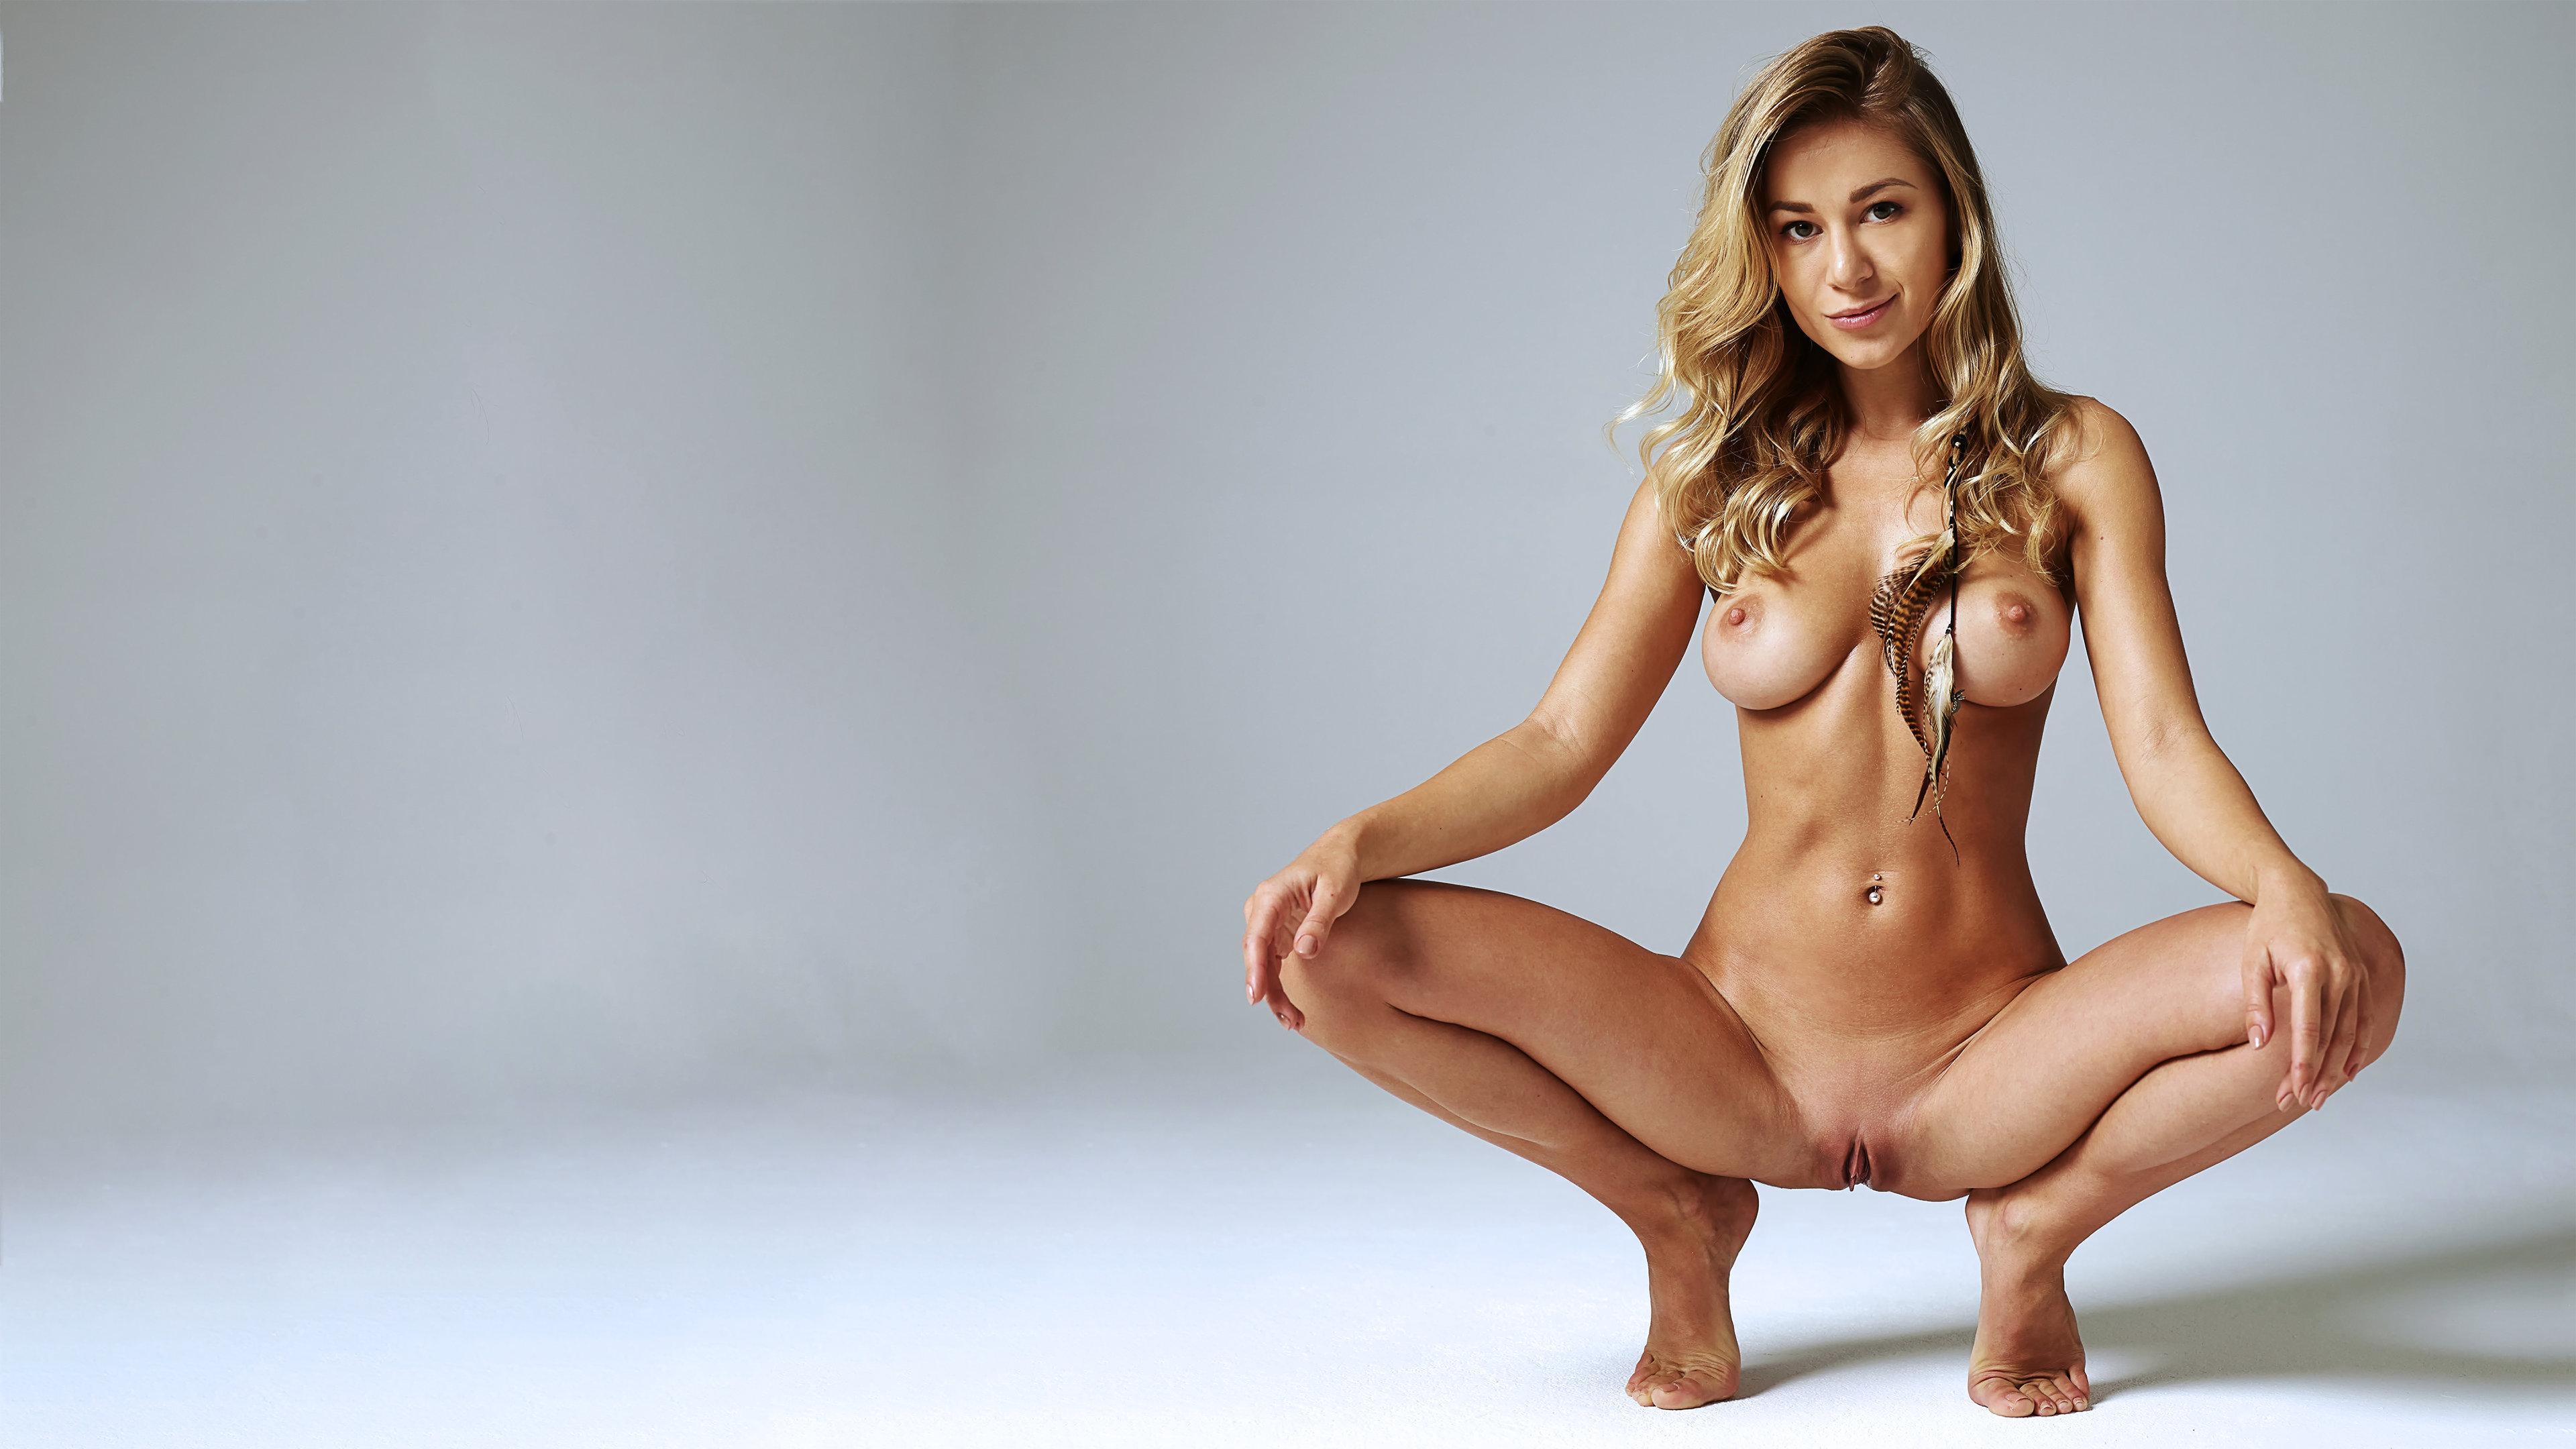 Wallpaper Candice B, Nude, 4K, Squatting, Candice Brielle -5466